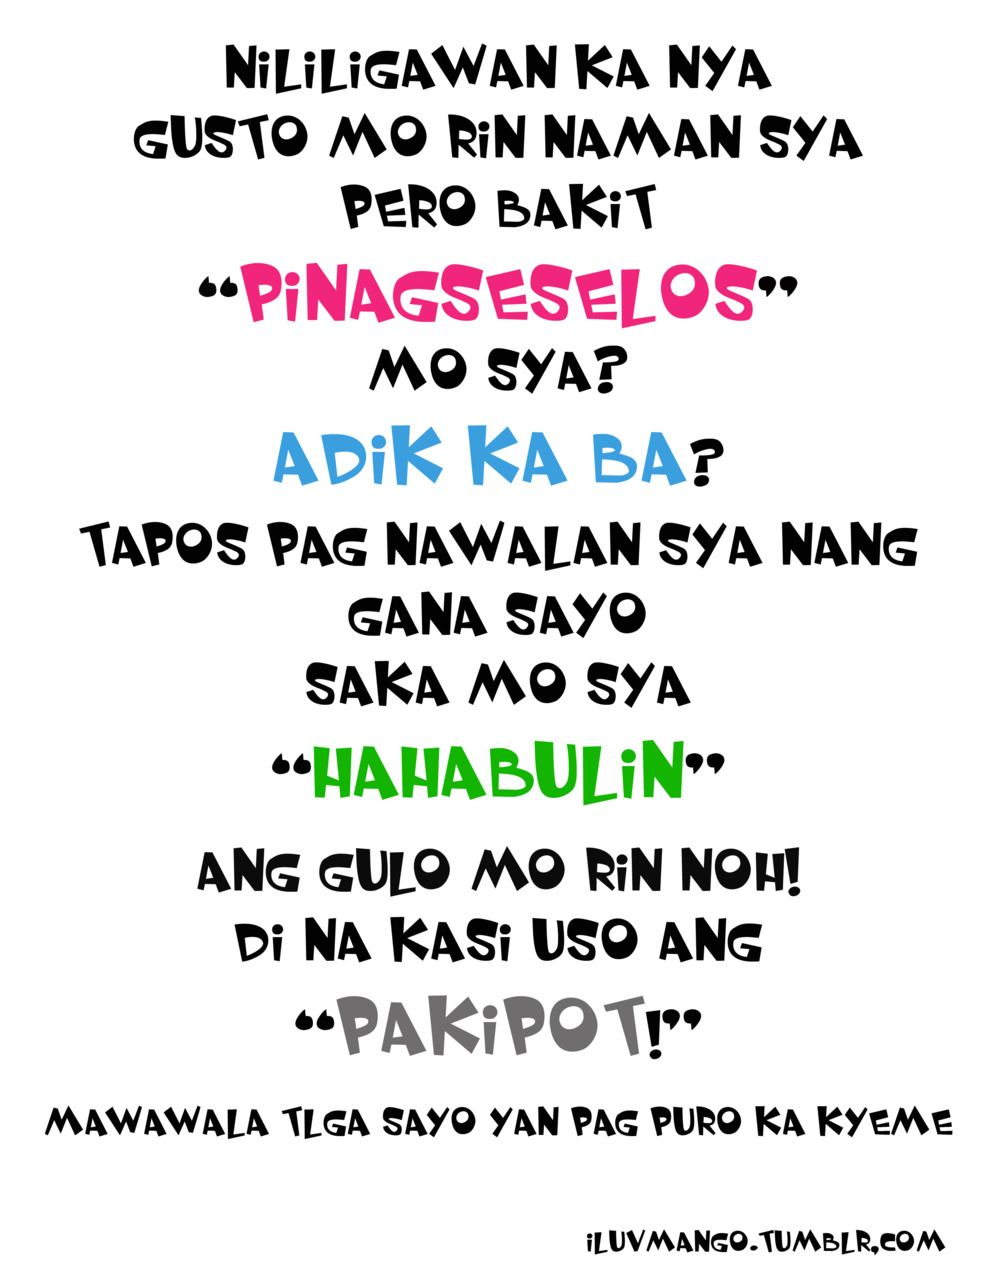 Bitter Quotes About Love Tagalog: Bitter-quotes-about-love-tagalog-815.jpg (989×1280